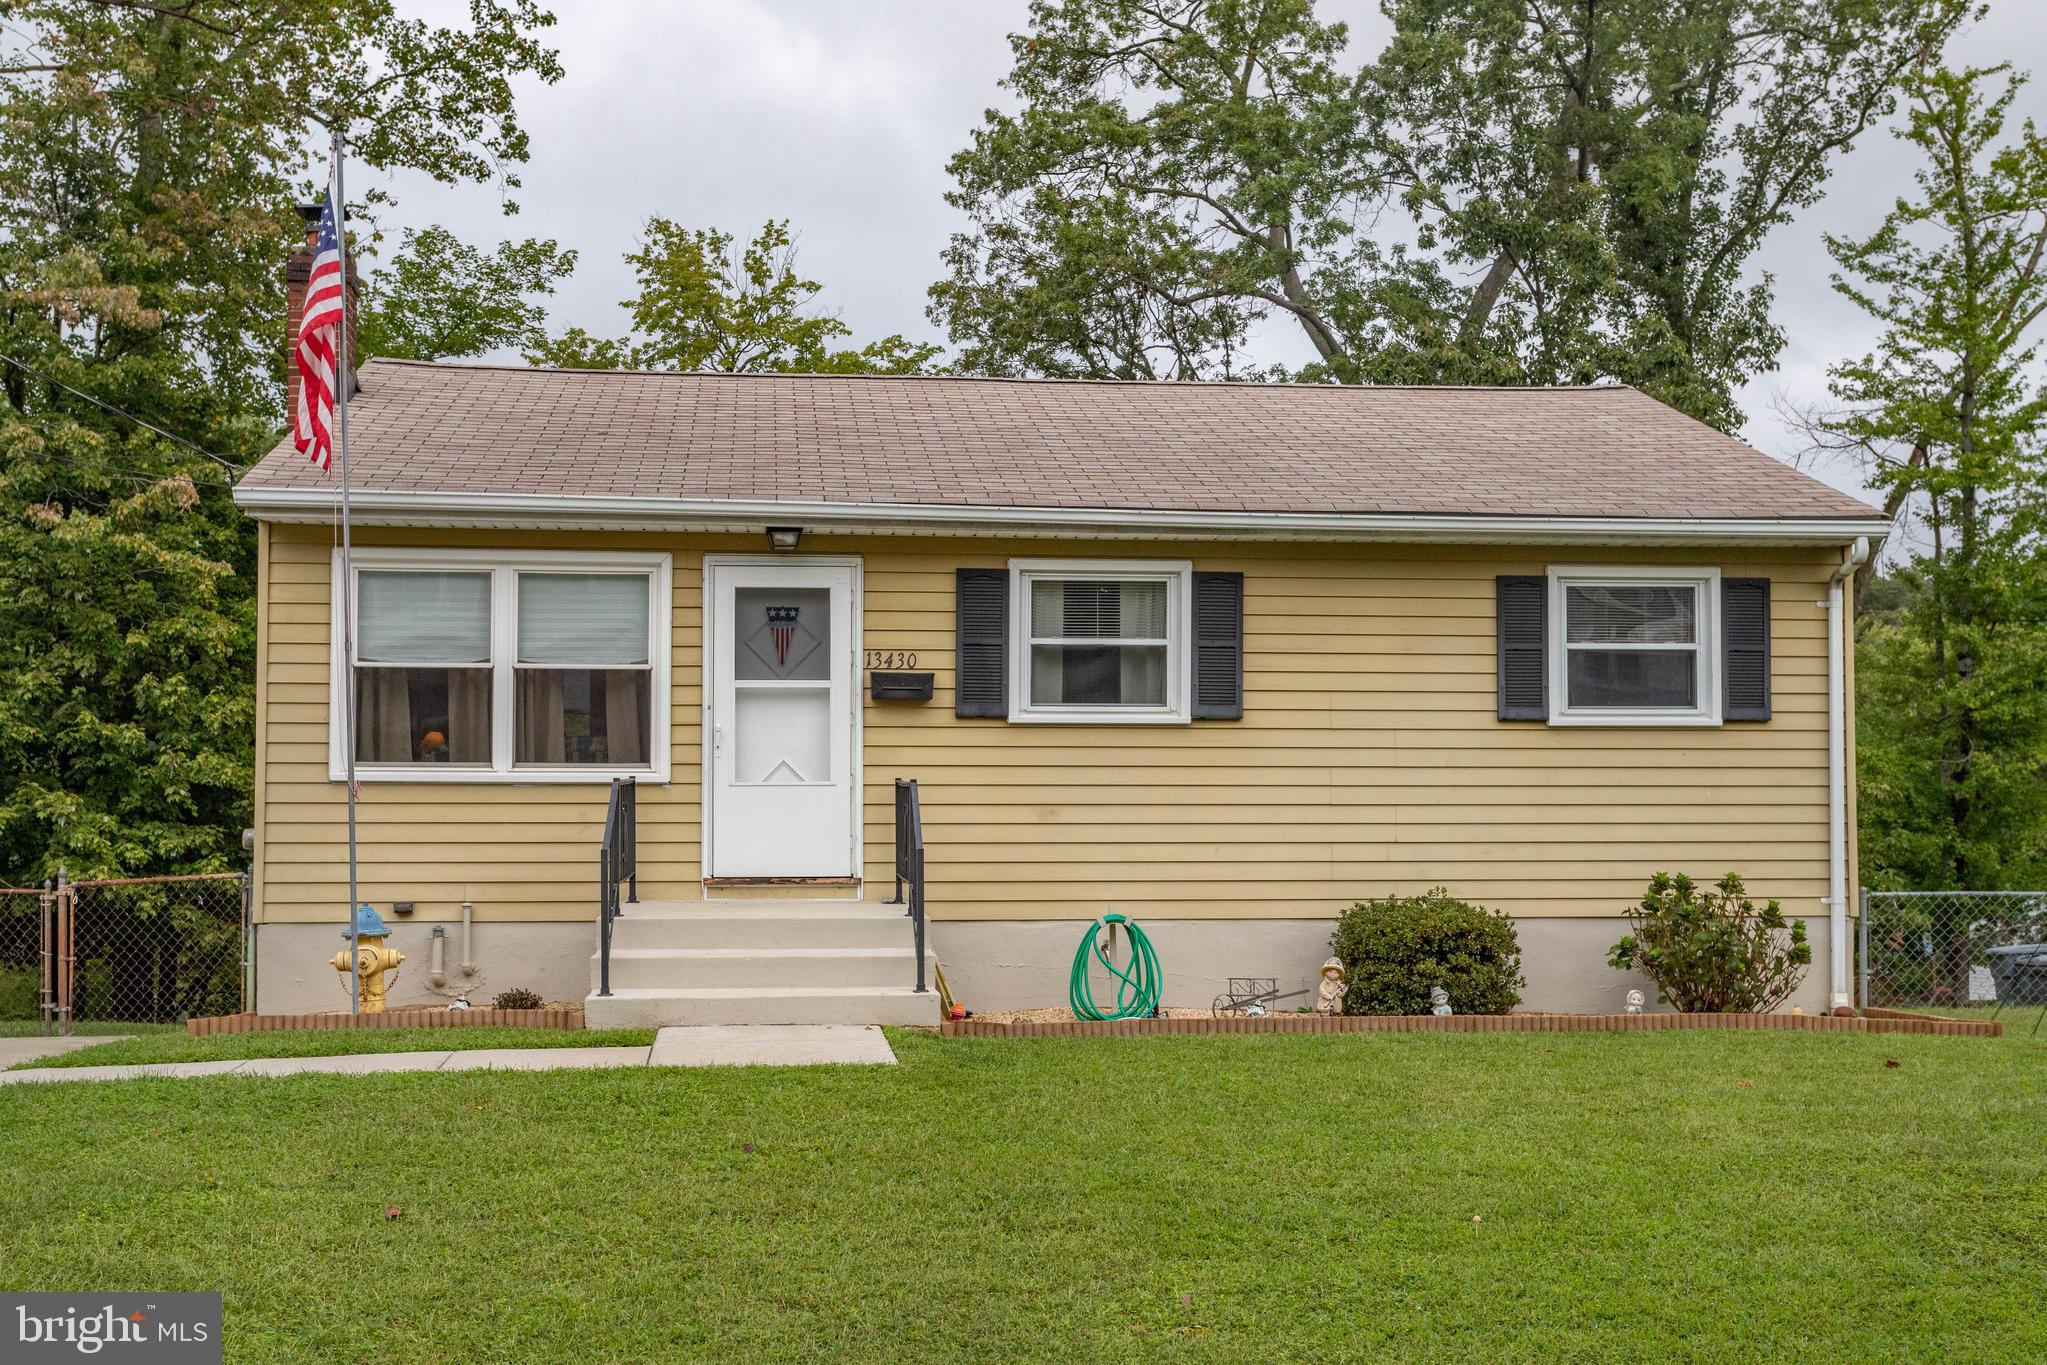 3BR/1BA in sought after Marumsco Village with huge backyard! Main level living with all BRs & BA on